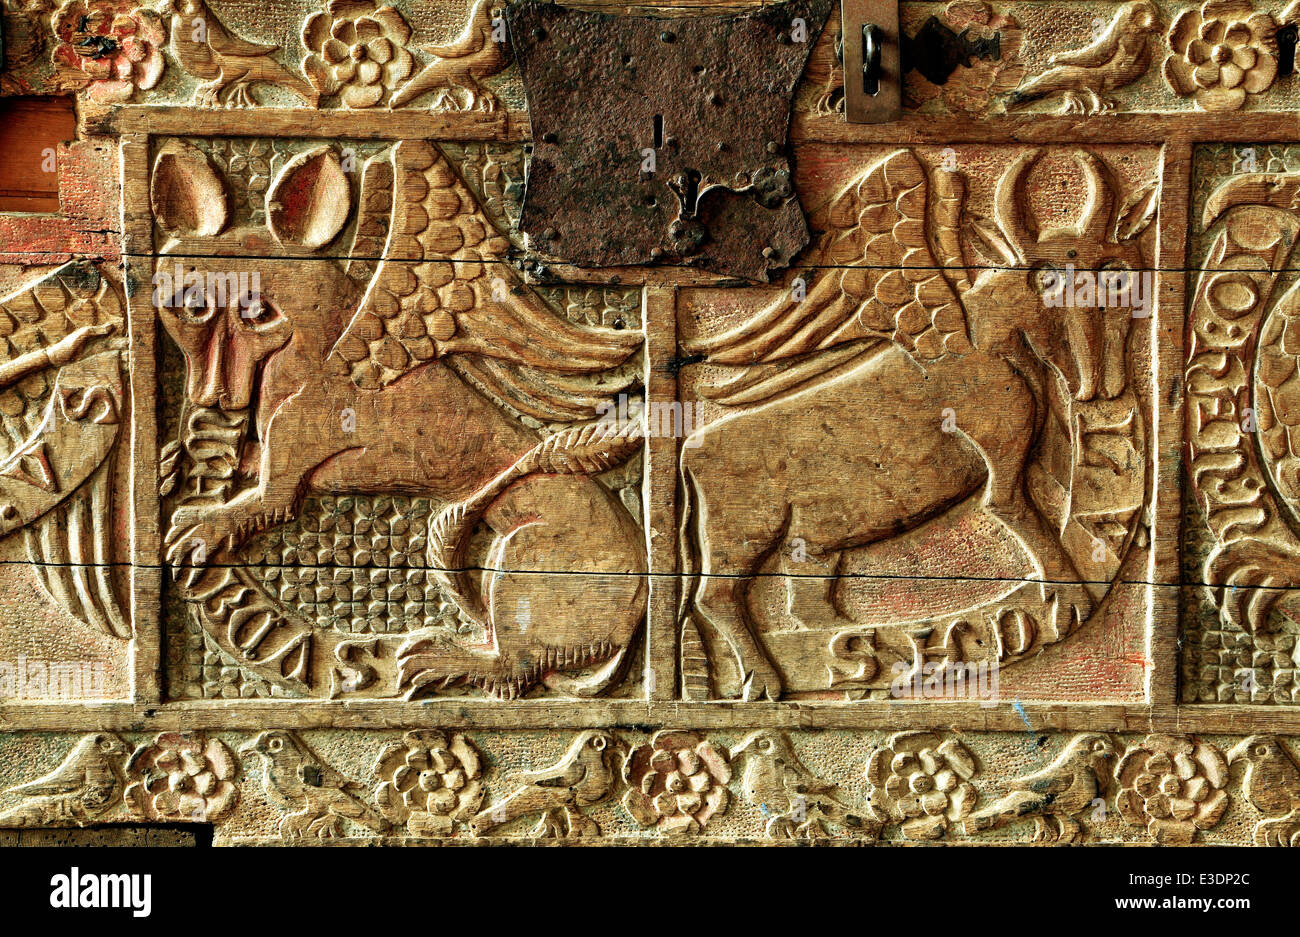 Dersingham, carved wood wooden 14th century chest, detail, symbols of 2 of the Four Evangelists, St. Luke and St.John, - Stock Image